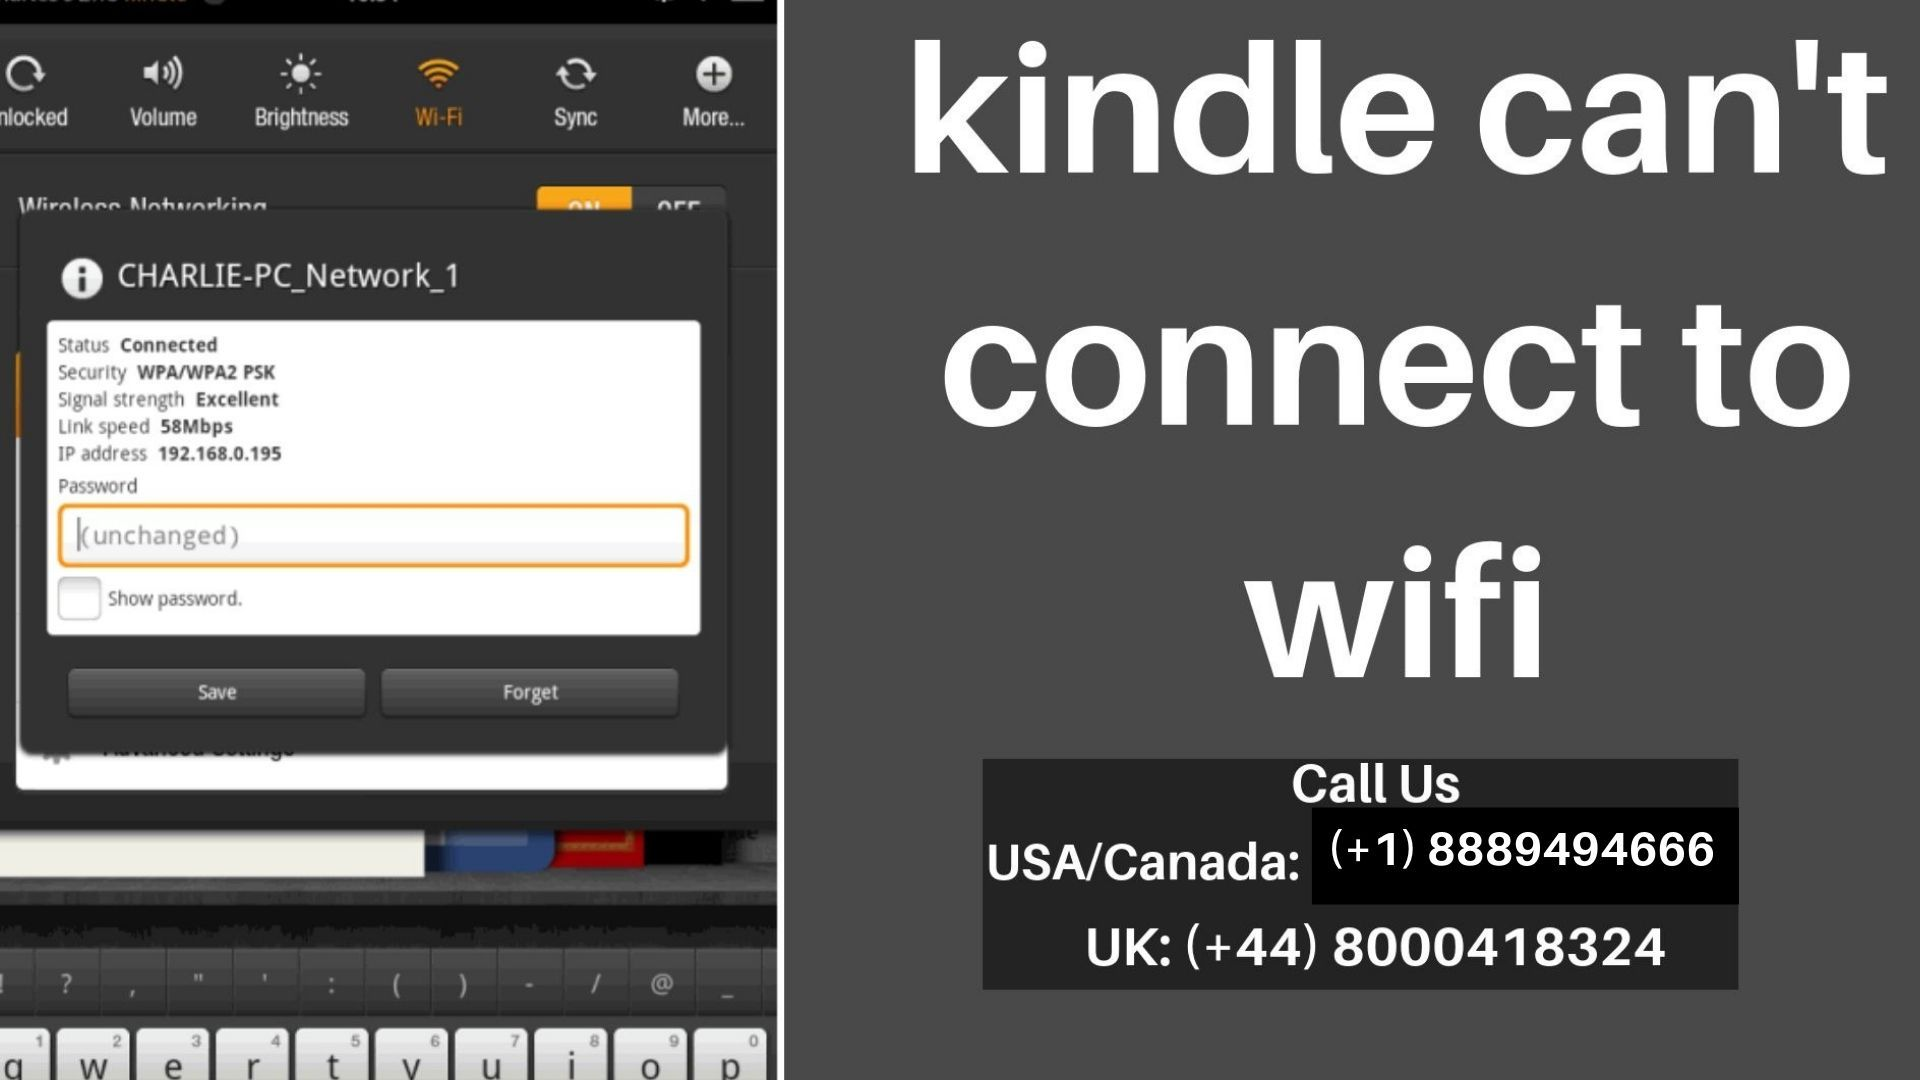 Resolve Kindle Won T Connect To Wifi Issue Instantly Call 1 888 949 4666 Kindle Wifi Connection